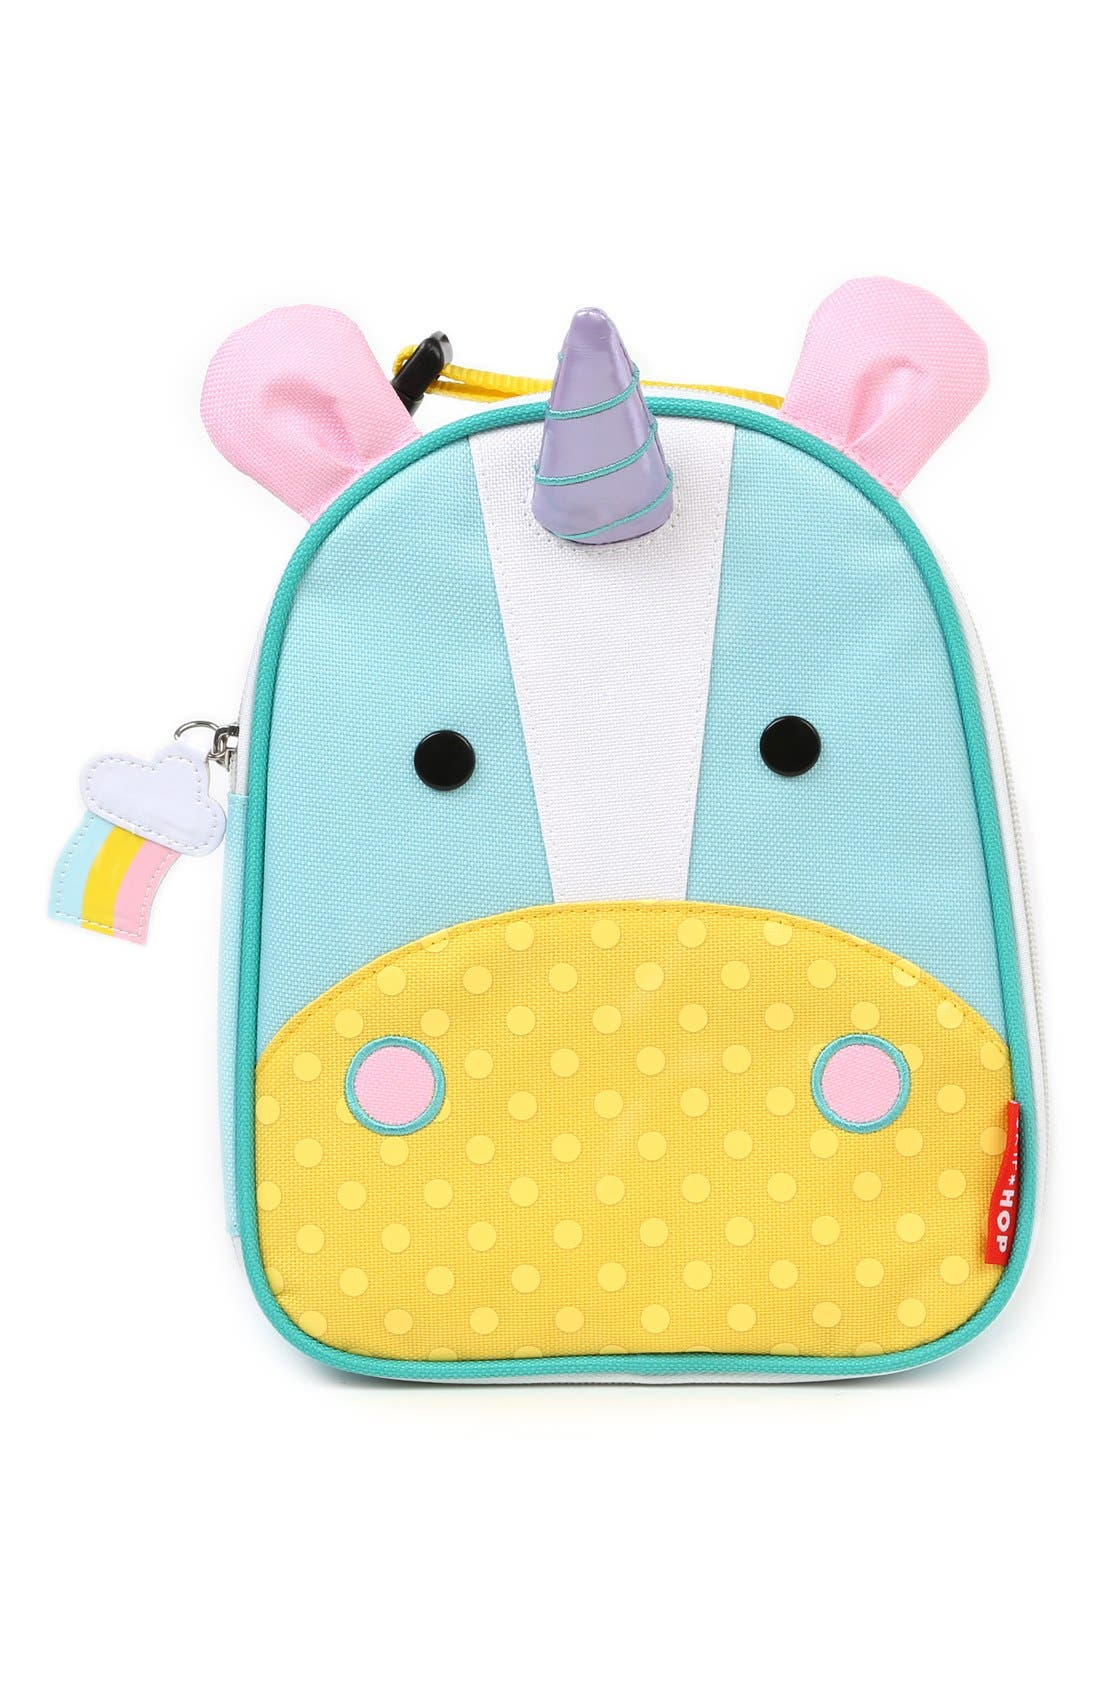 SKIP HOP 'Zoo Lunchie - Unicorn' Insulated Lunch Bag, Main, color, UNICORN